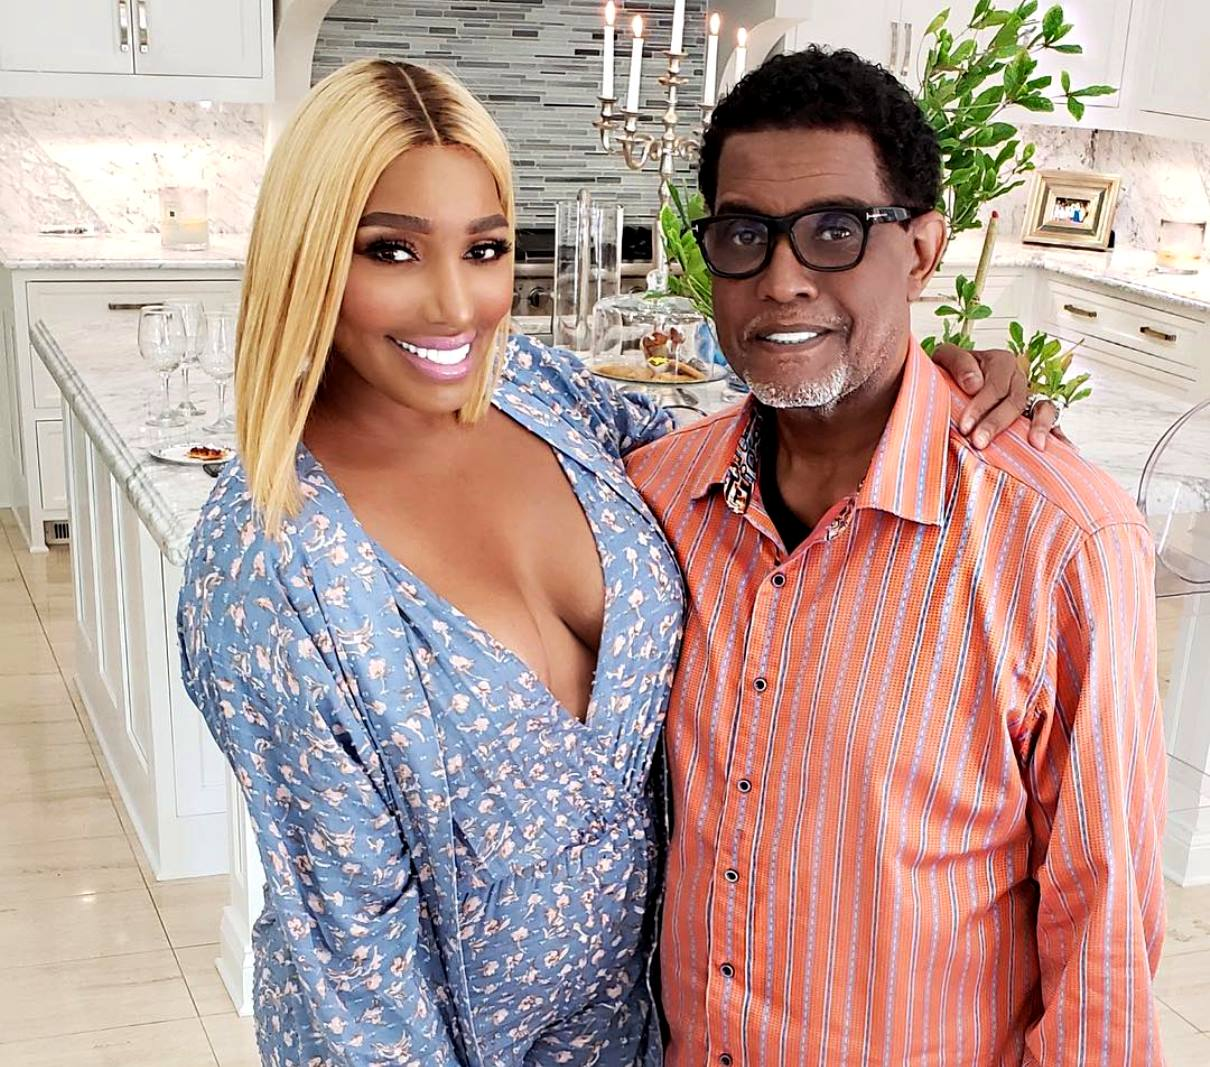 Gregg Leaks Receives Backlash And Responds Following An IG Post About His Wife, NeNe Leakes